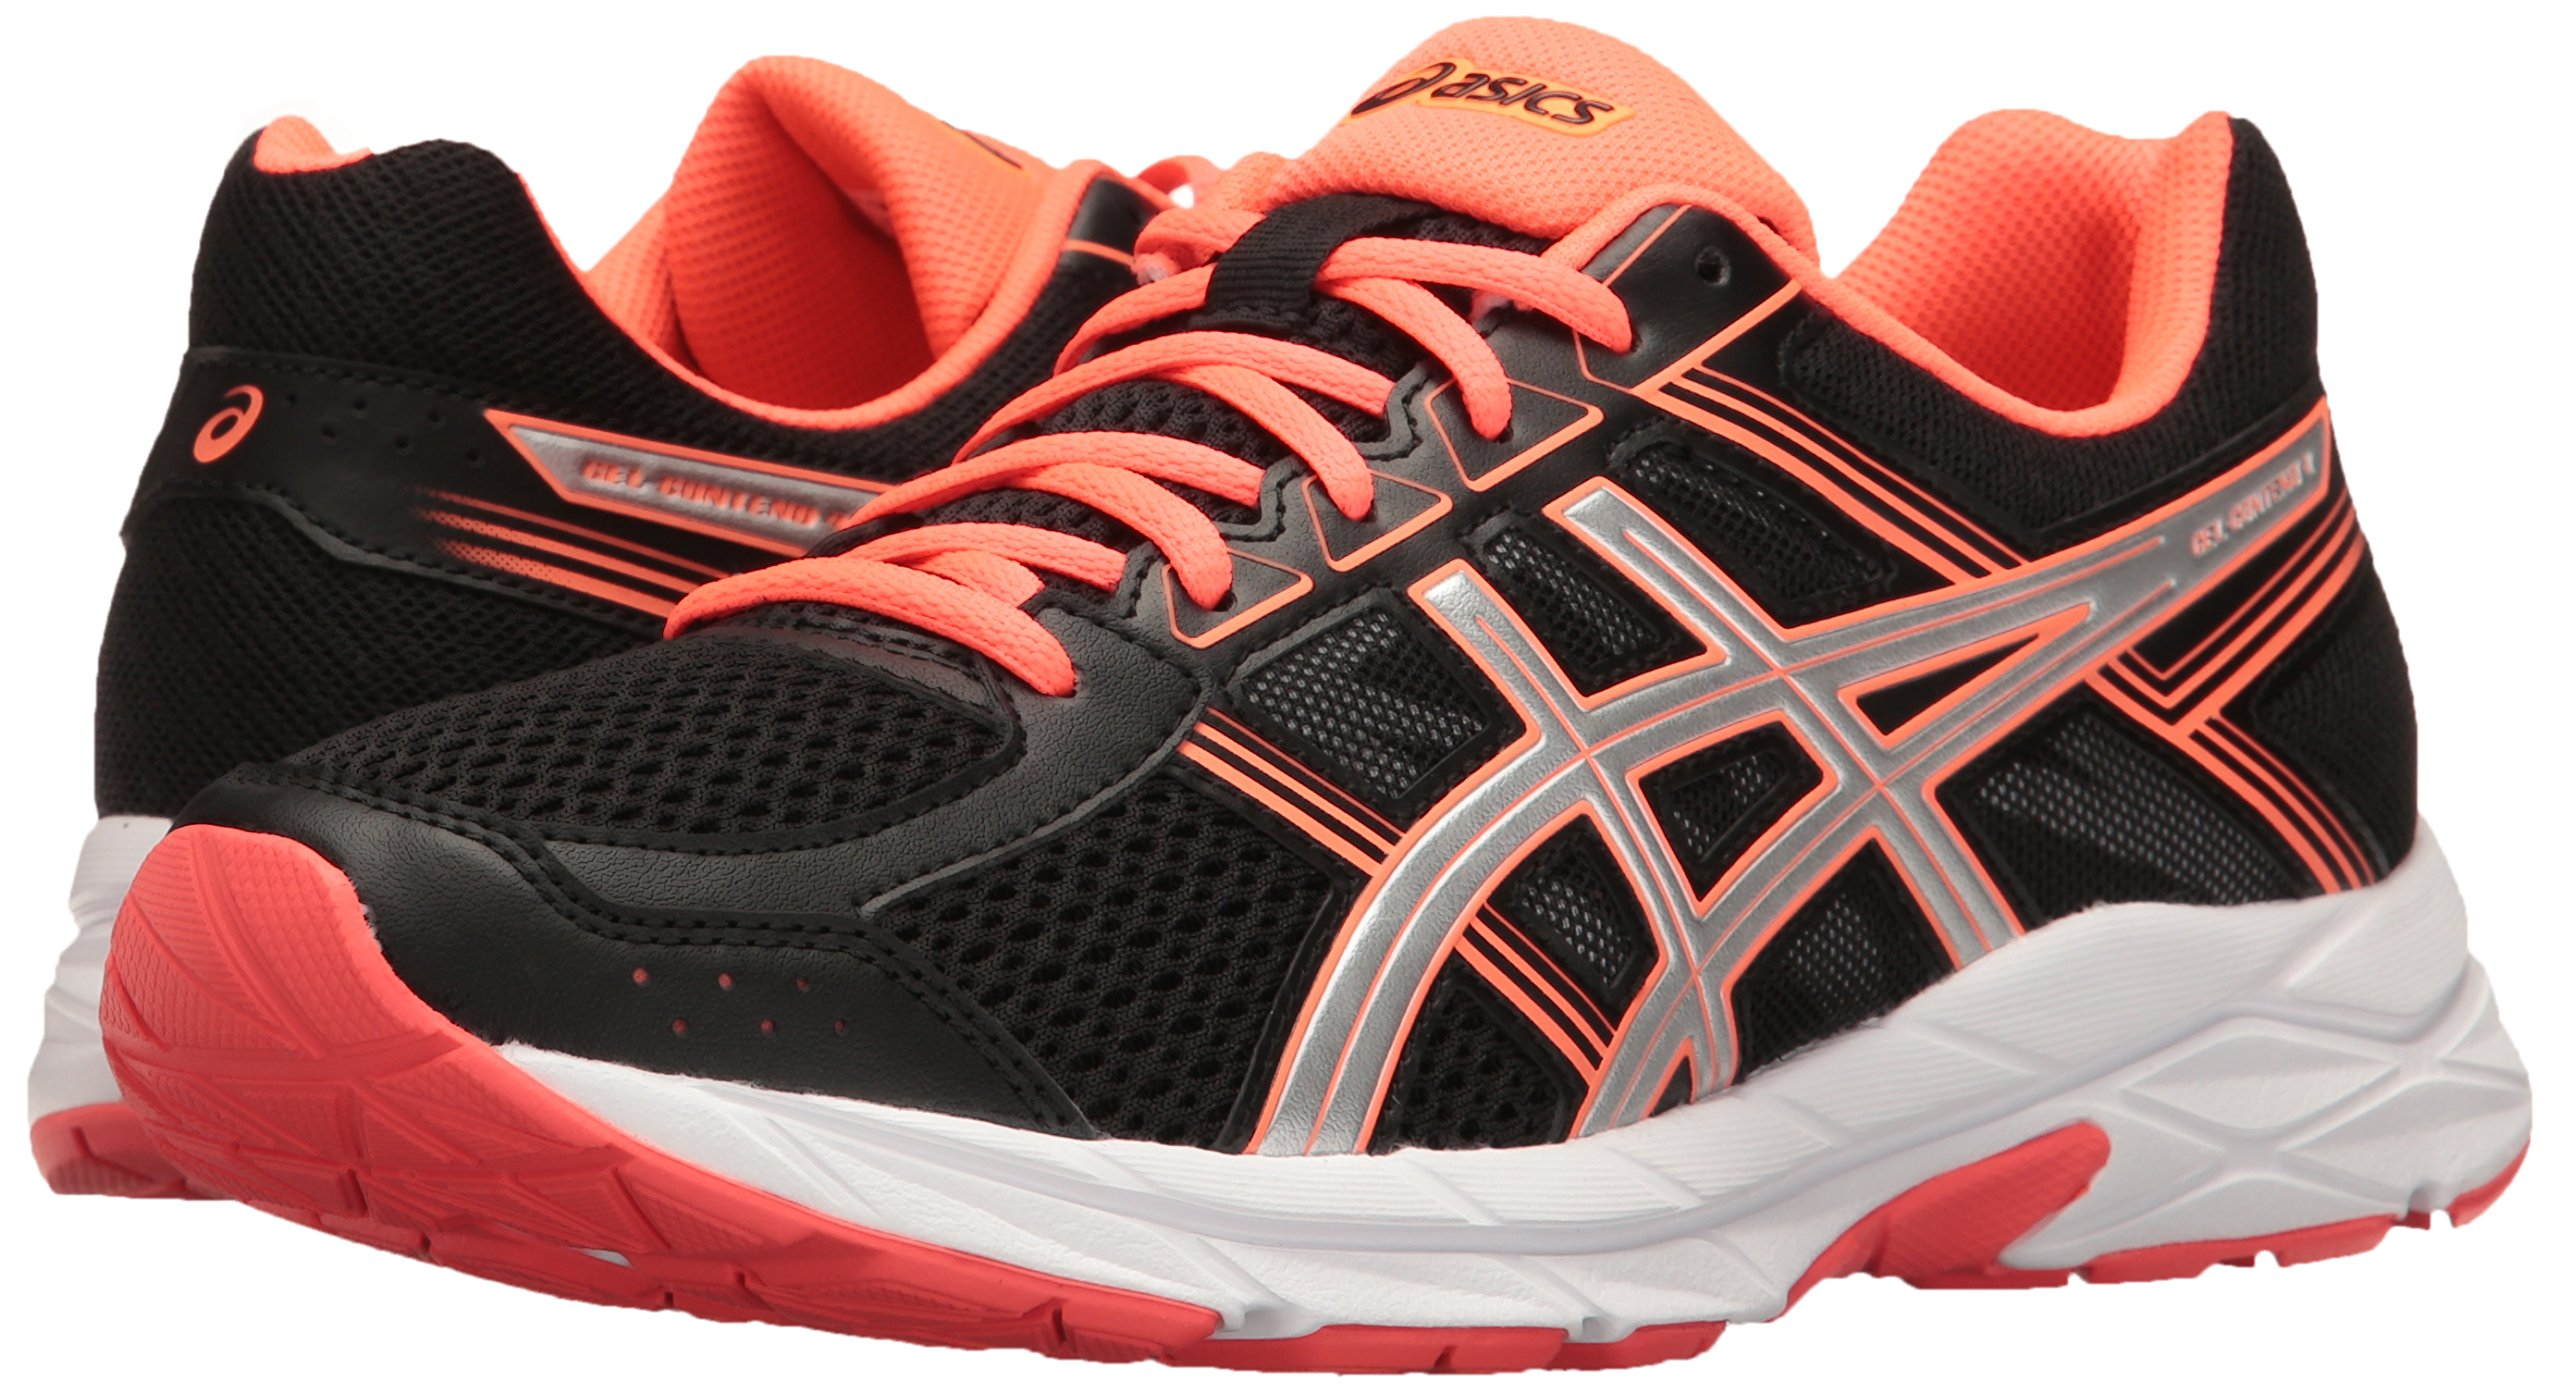 ASICS Women's Gel-Contend 4 Running Shoe, Black/Silver/Flash Coral, 5 M US by ASICS (Image #6)